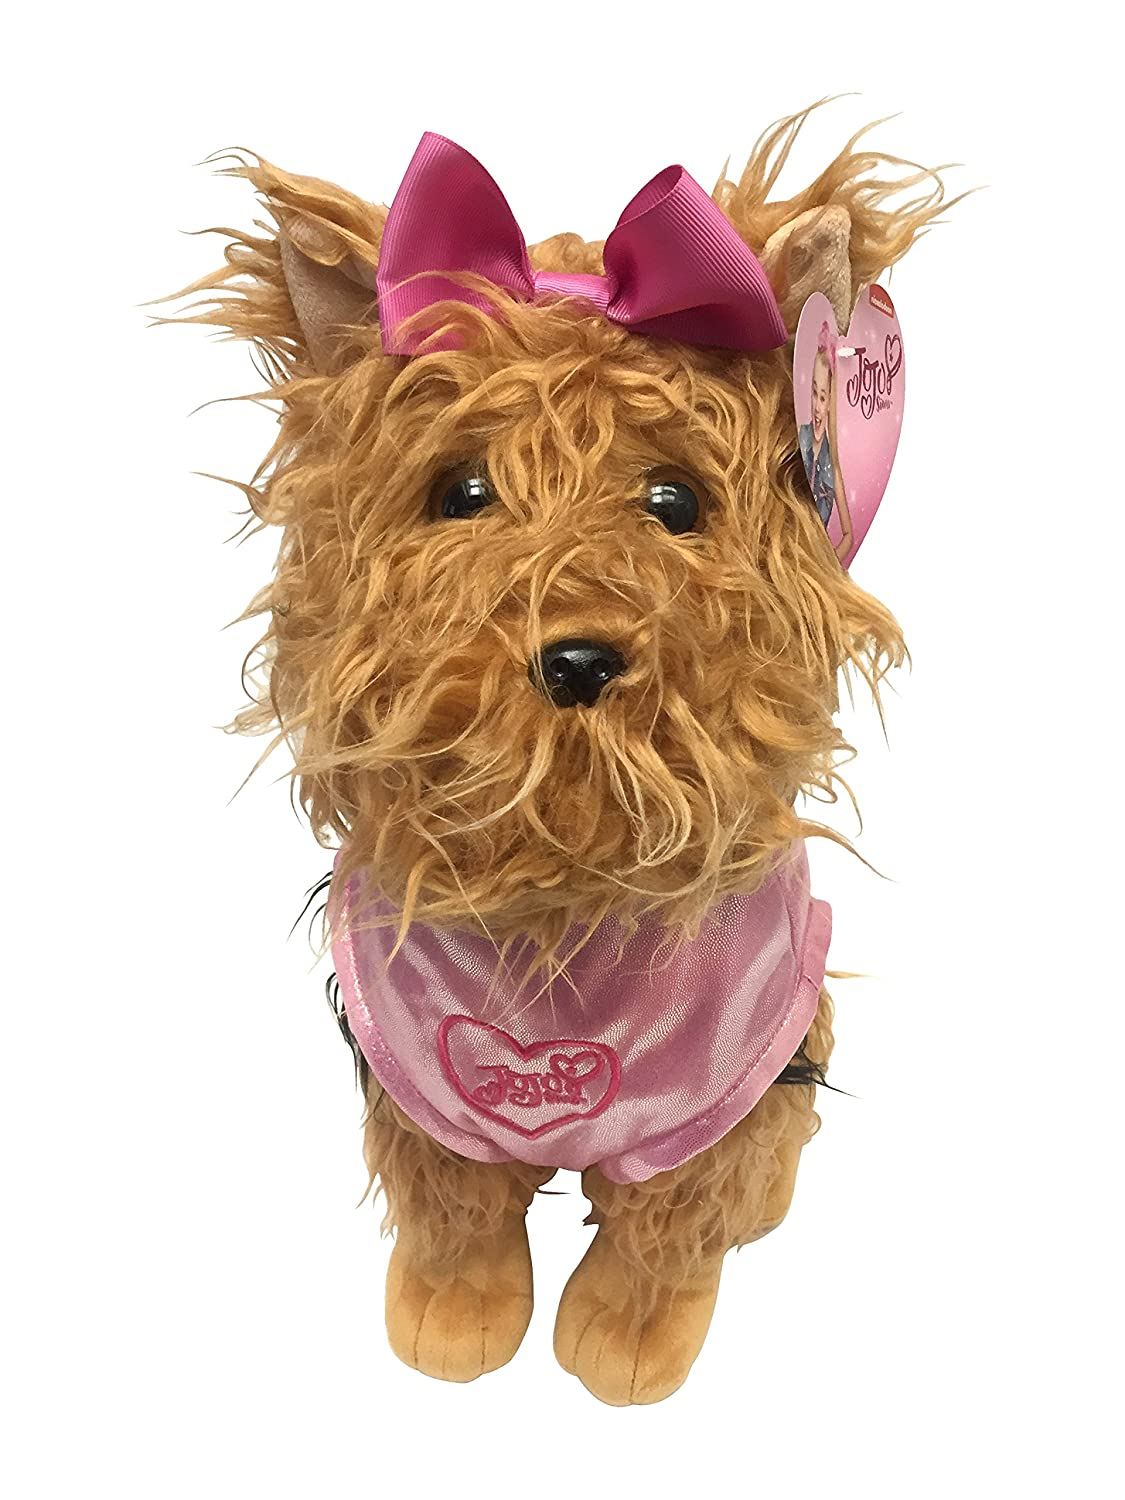 Nickelodeon JoJo Siwa BowBow the Dog Plush 17